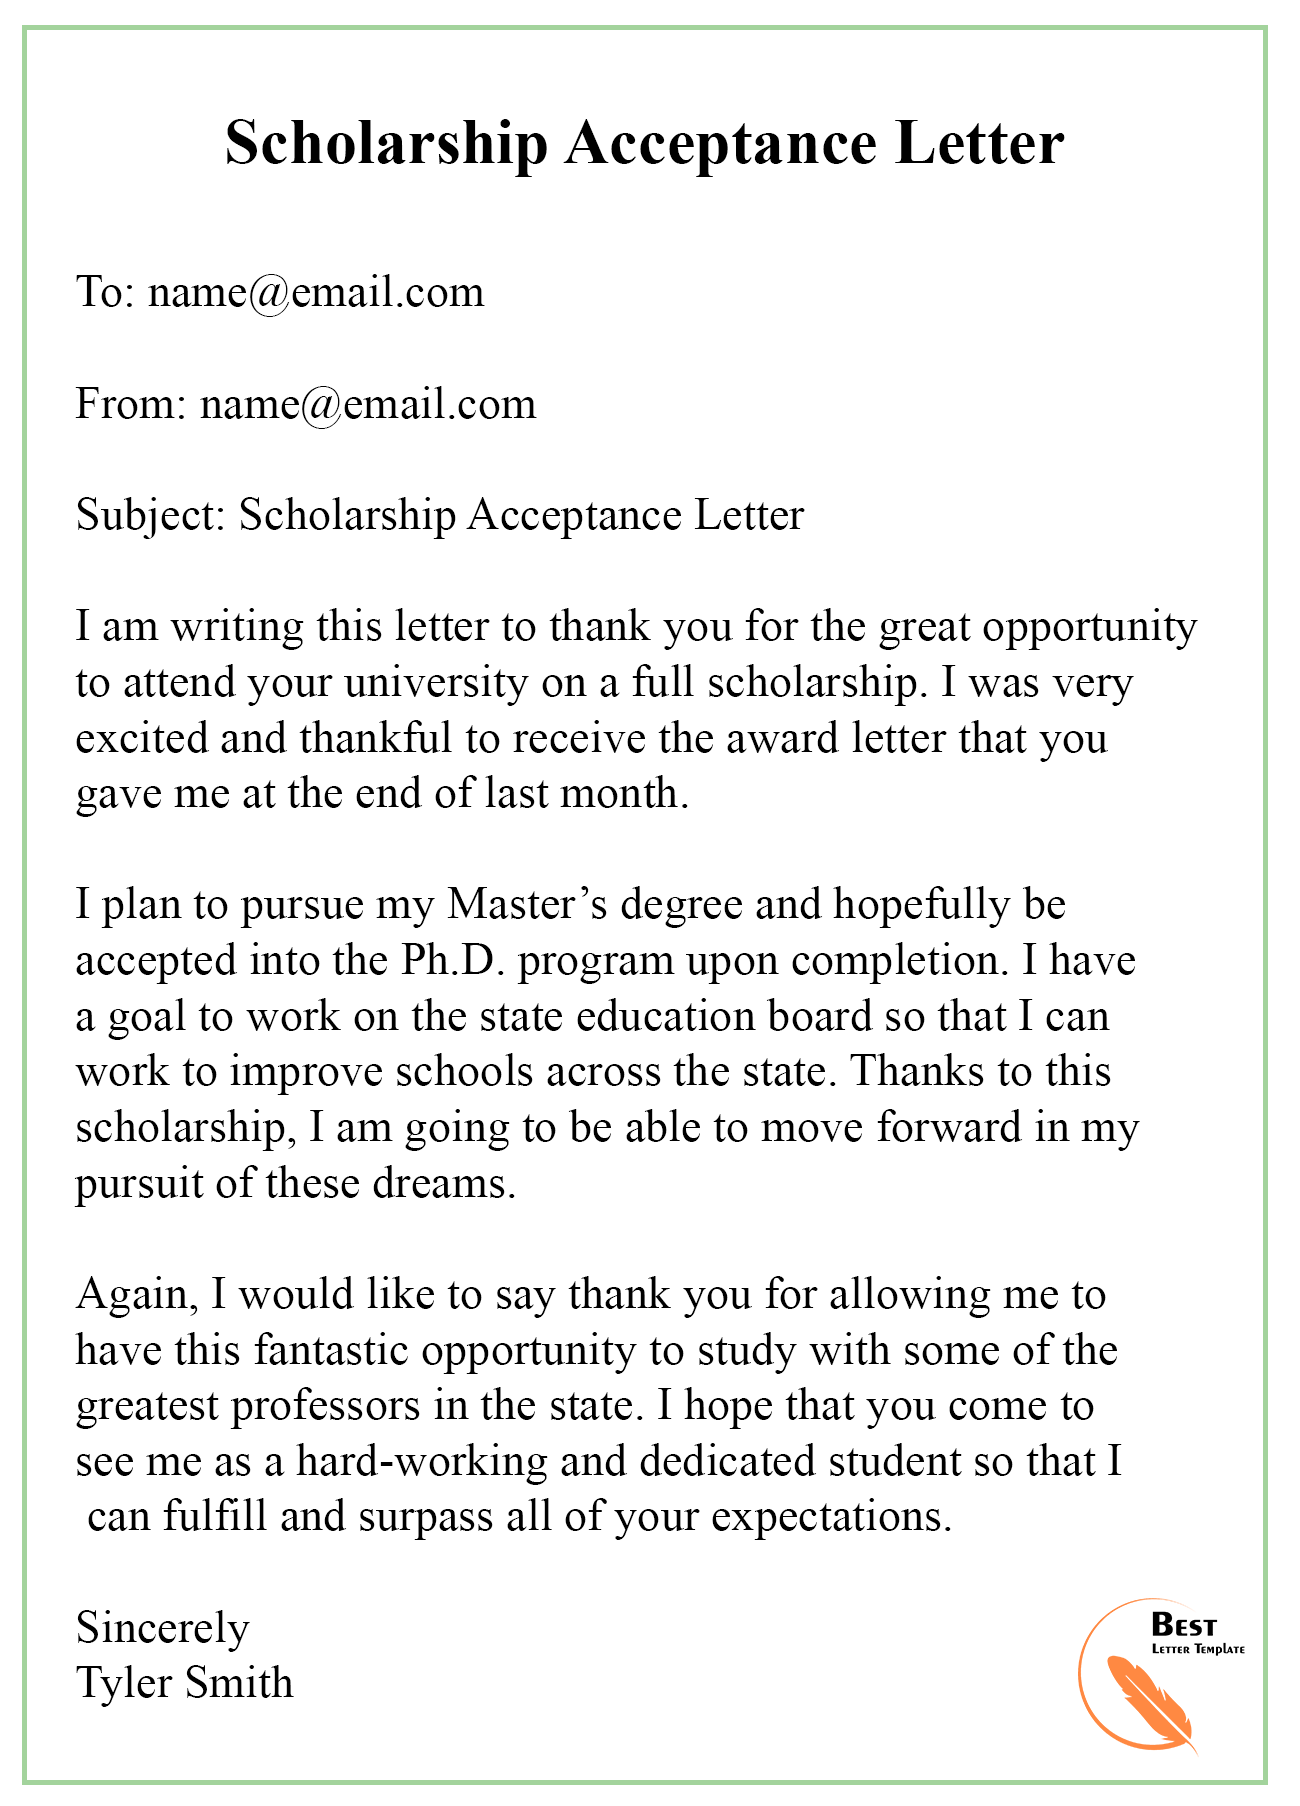 how to write a scholarship letter pdf